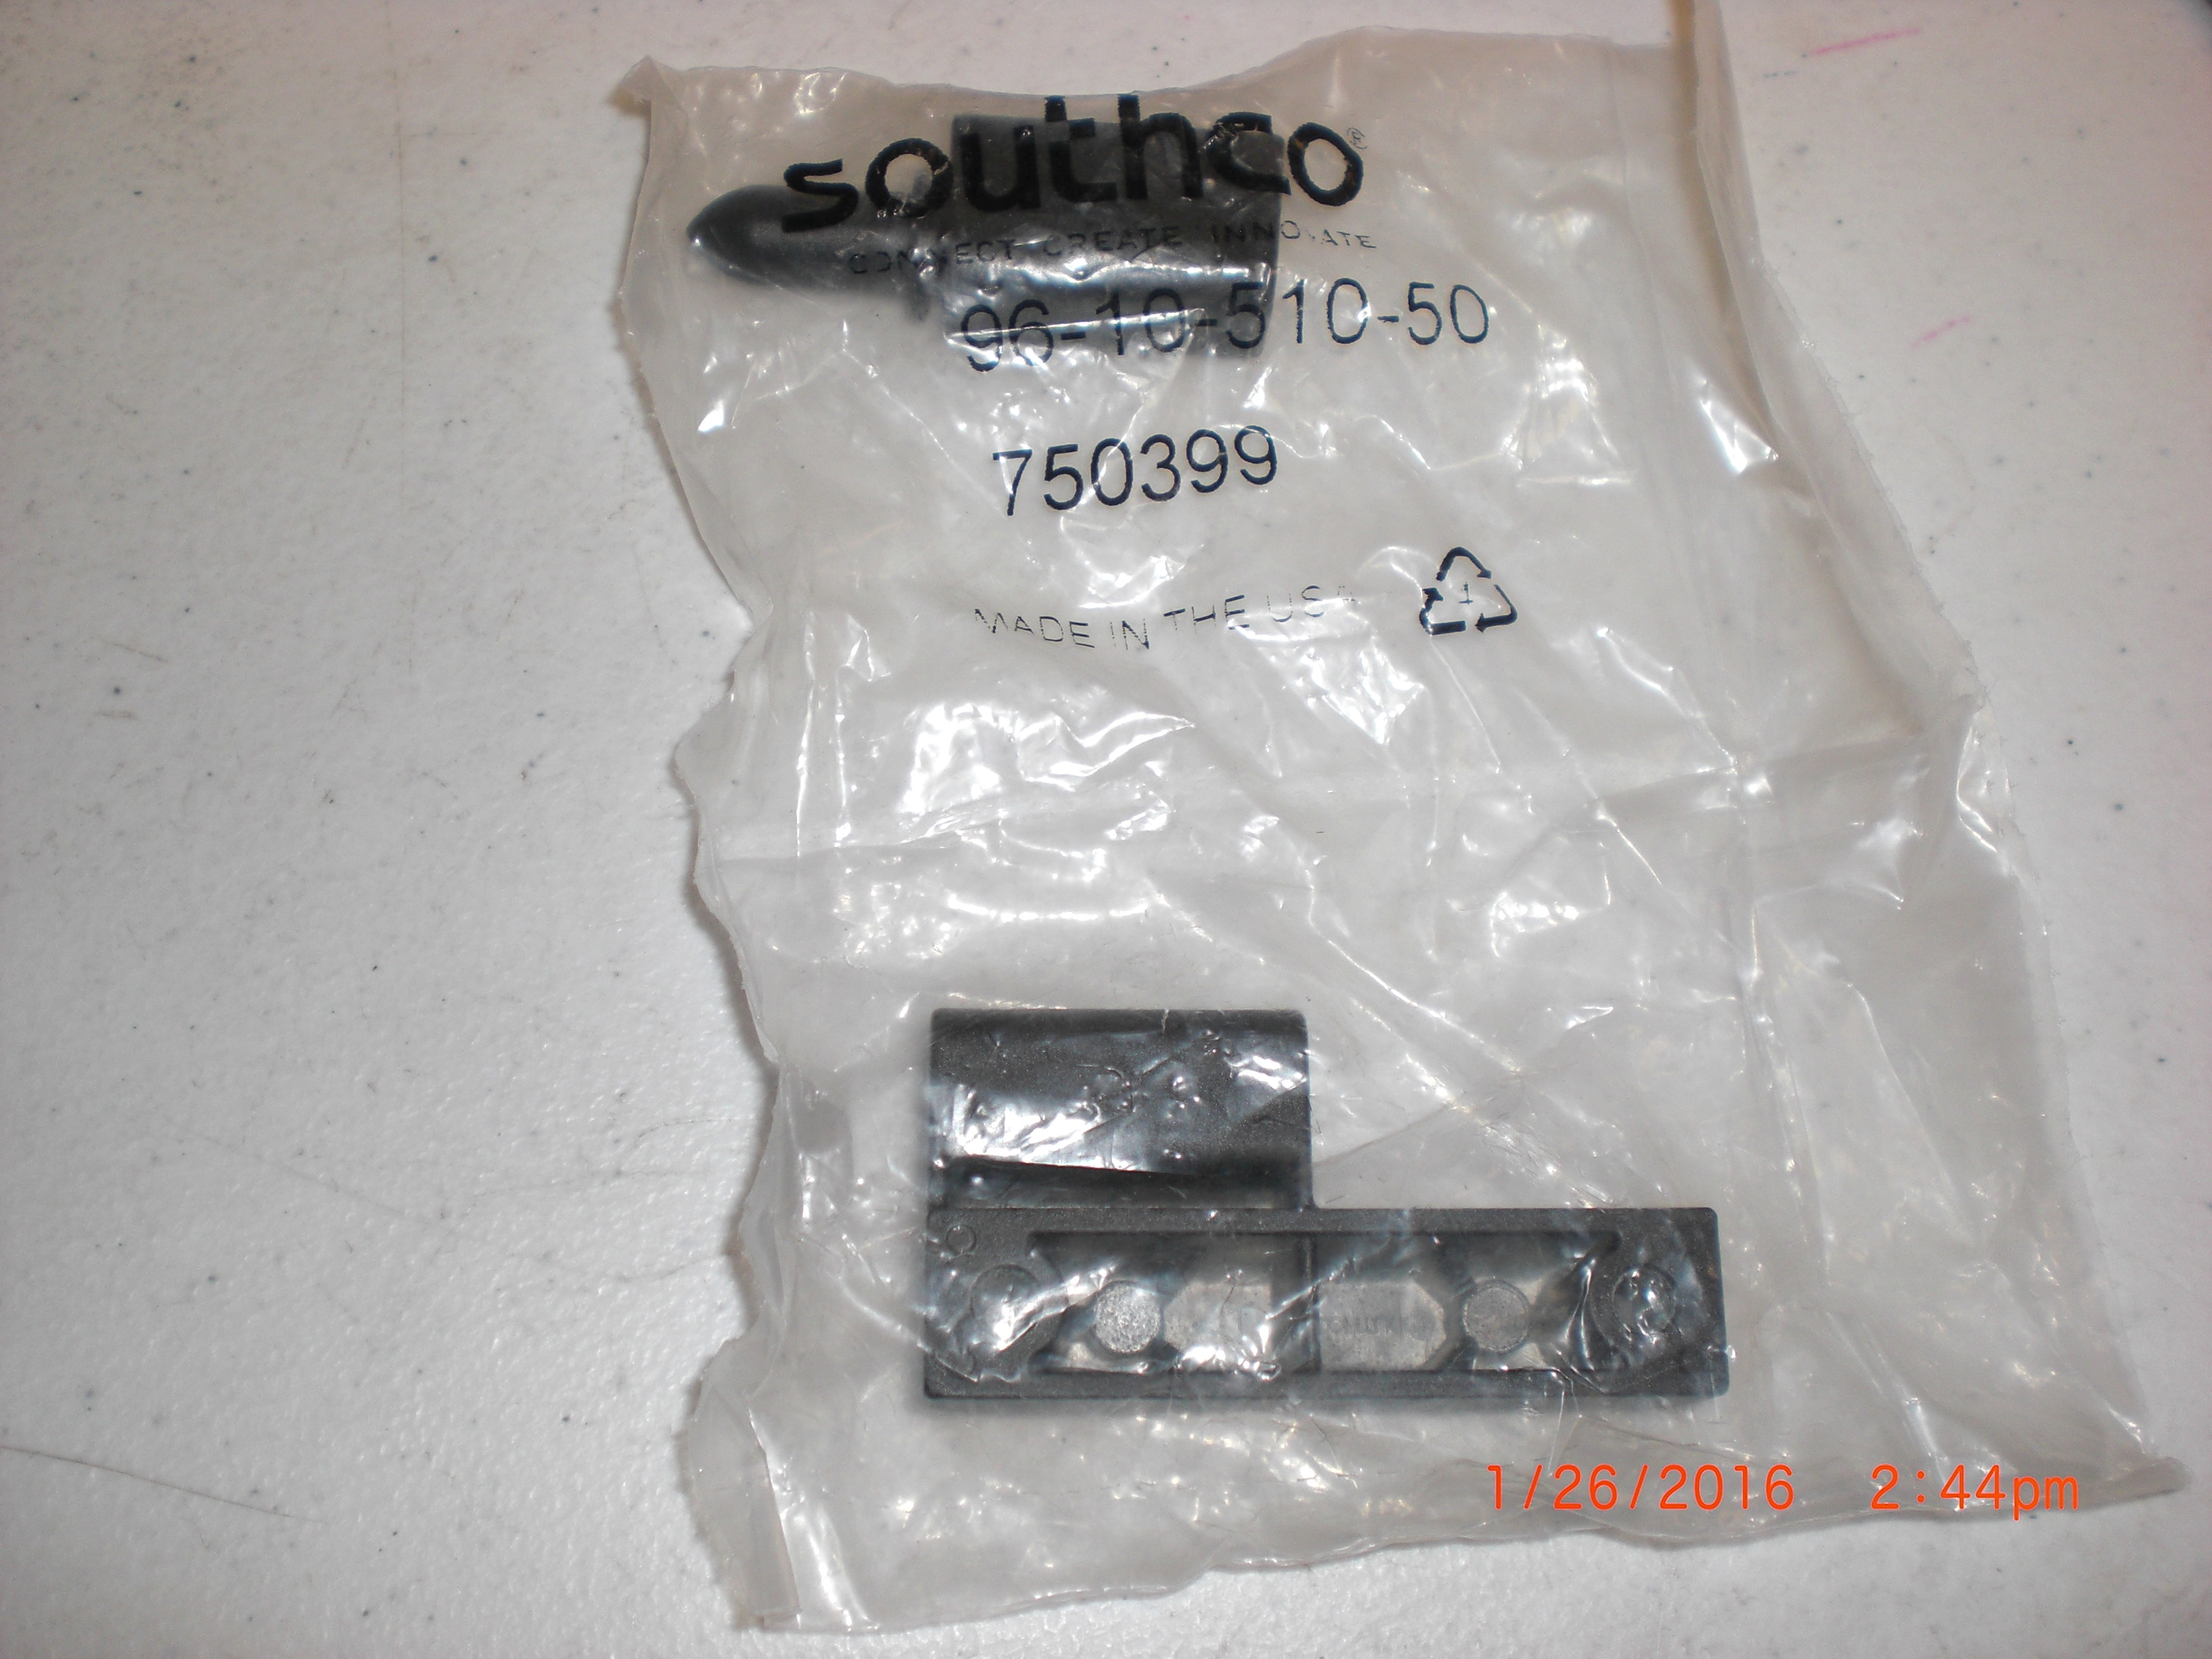 Hardware Offset Lift-Off Hinge Inch, Offset Type A SOUTHCO 96-10-510-50